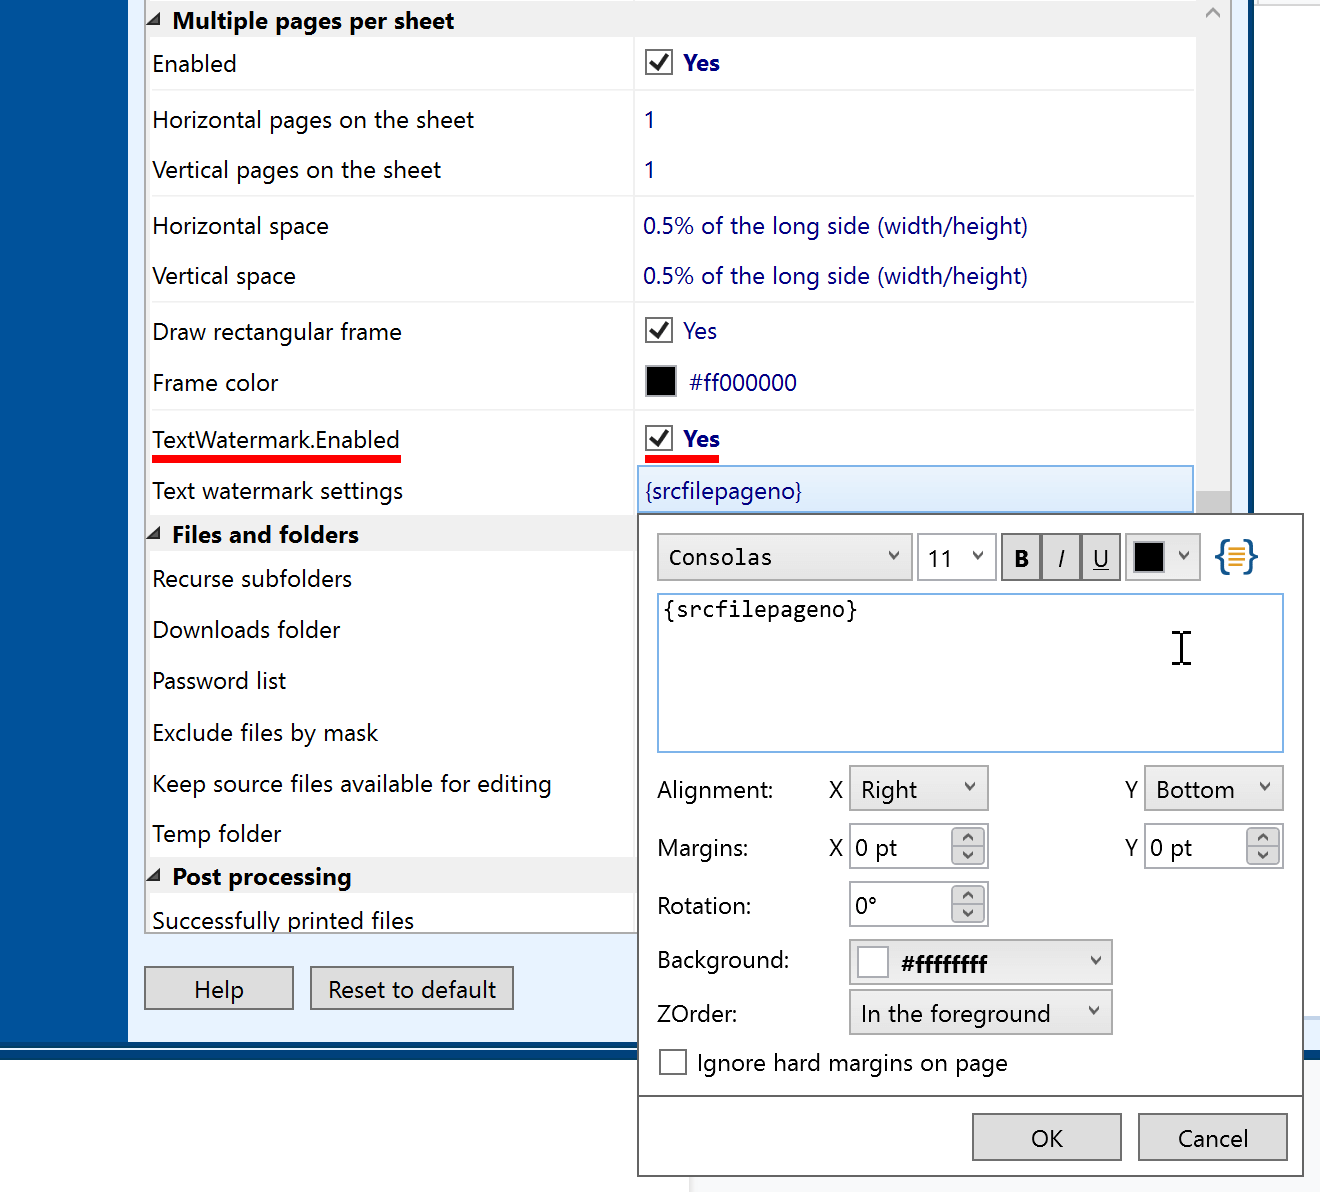 Print multiple pages per sheet + page number